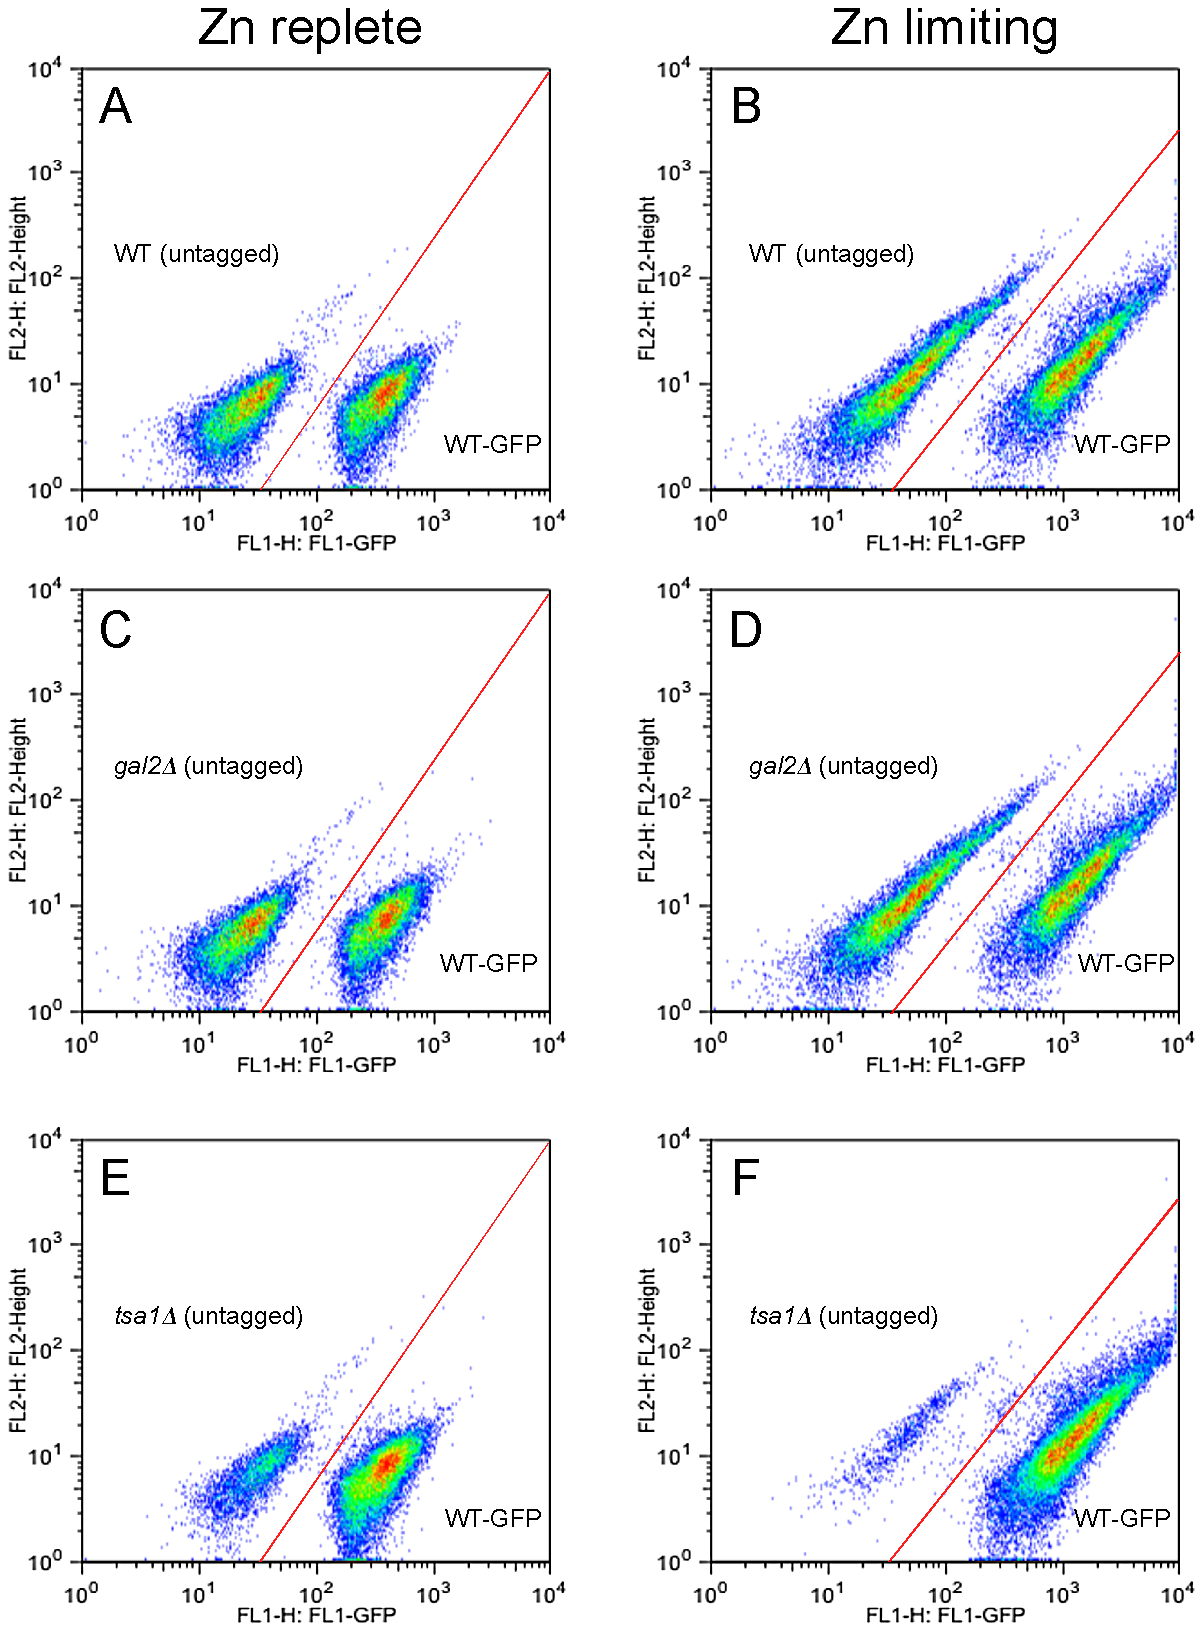 Analysis of low zinc growth by flow cytometry.